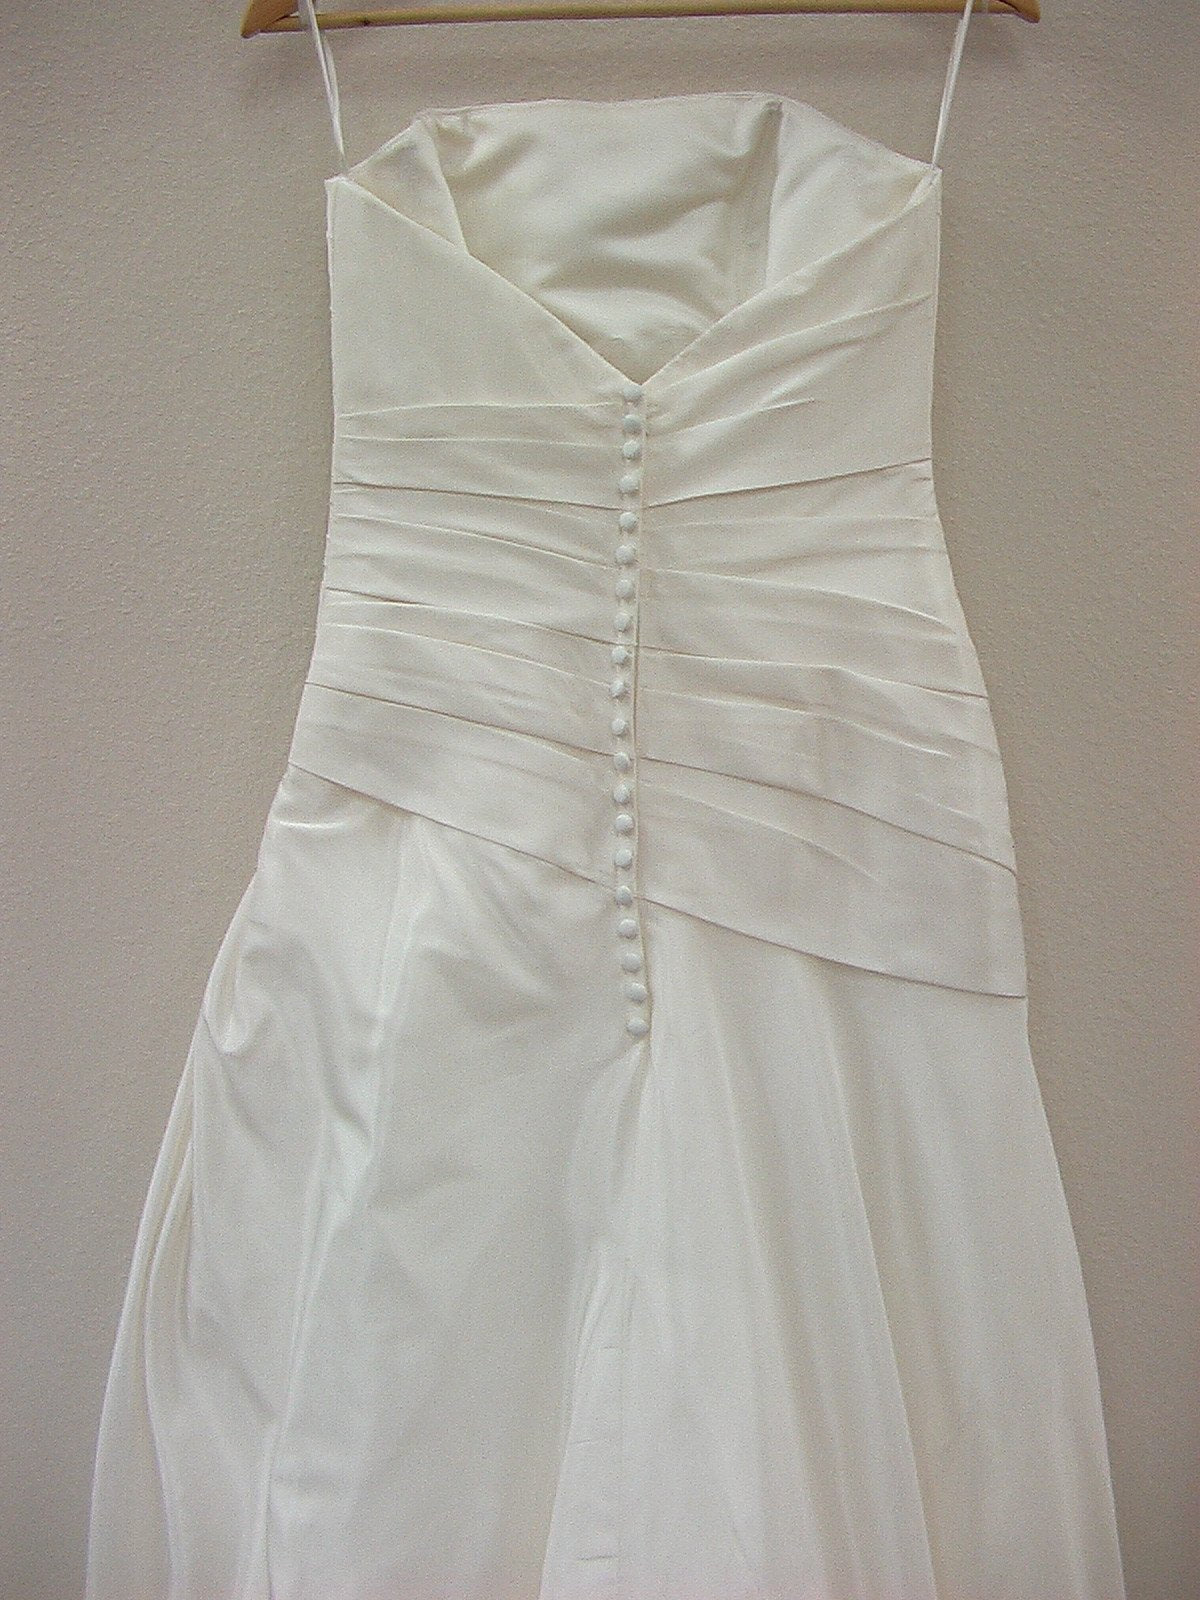 Mori Lee 1068 Ivory size 10 In Stock Wedding Dress - Tom's Bridal